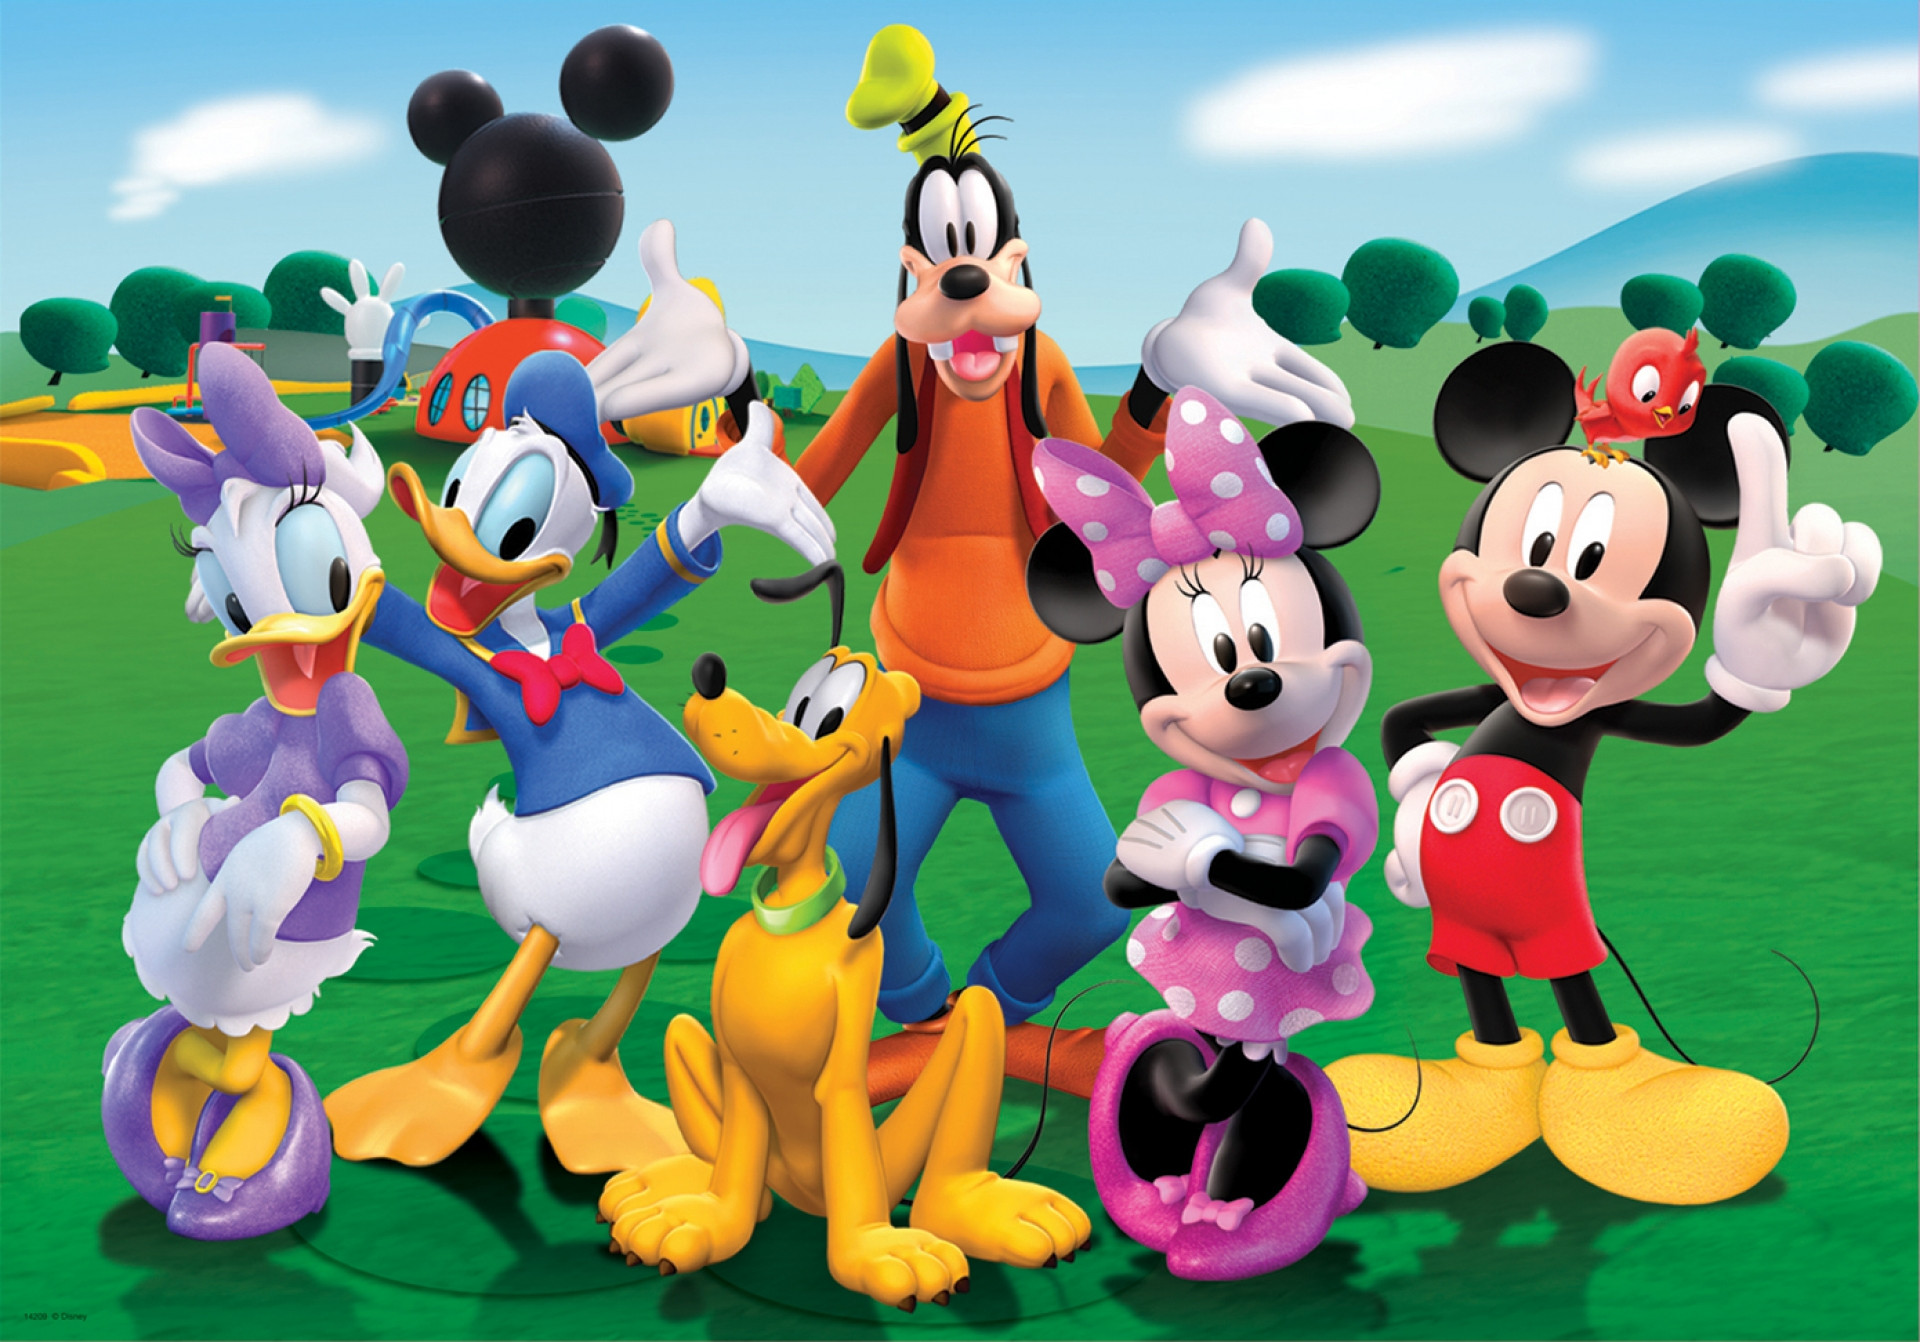 Cute Babies Wallpapers Hd Download Mickey Mouse Characters Images Pixelstalk Net